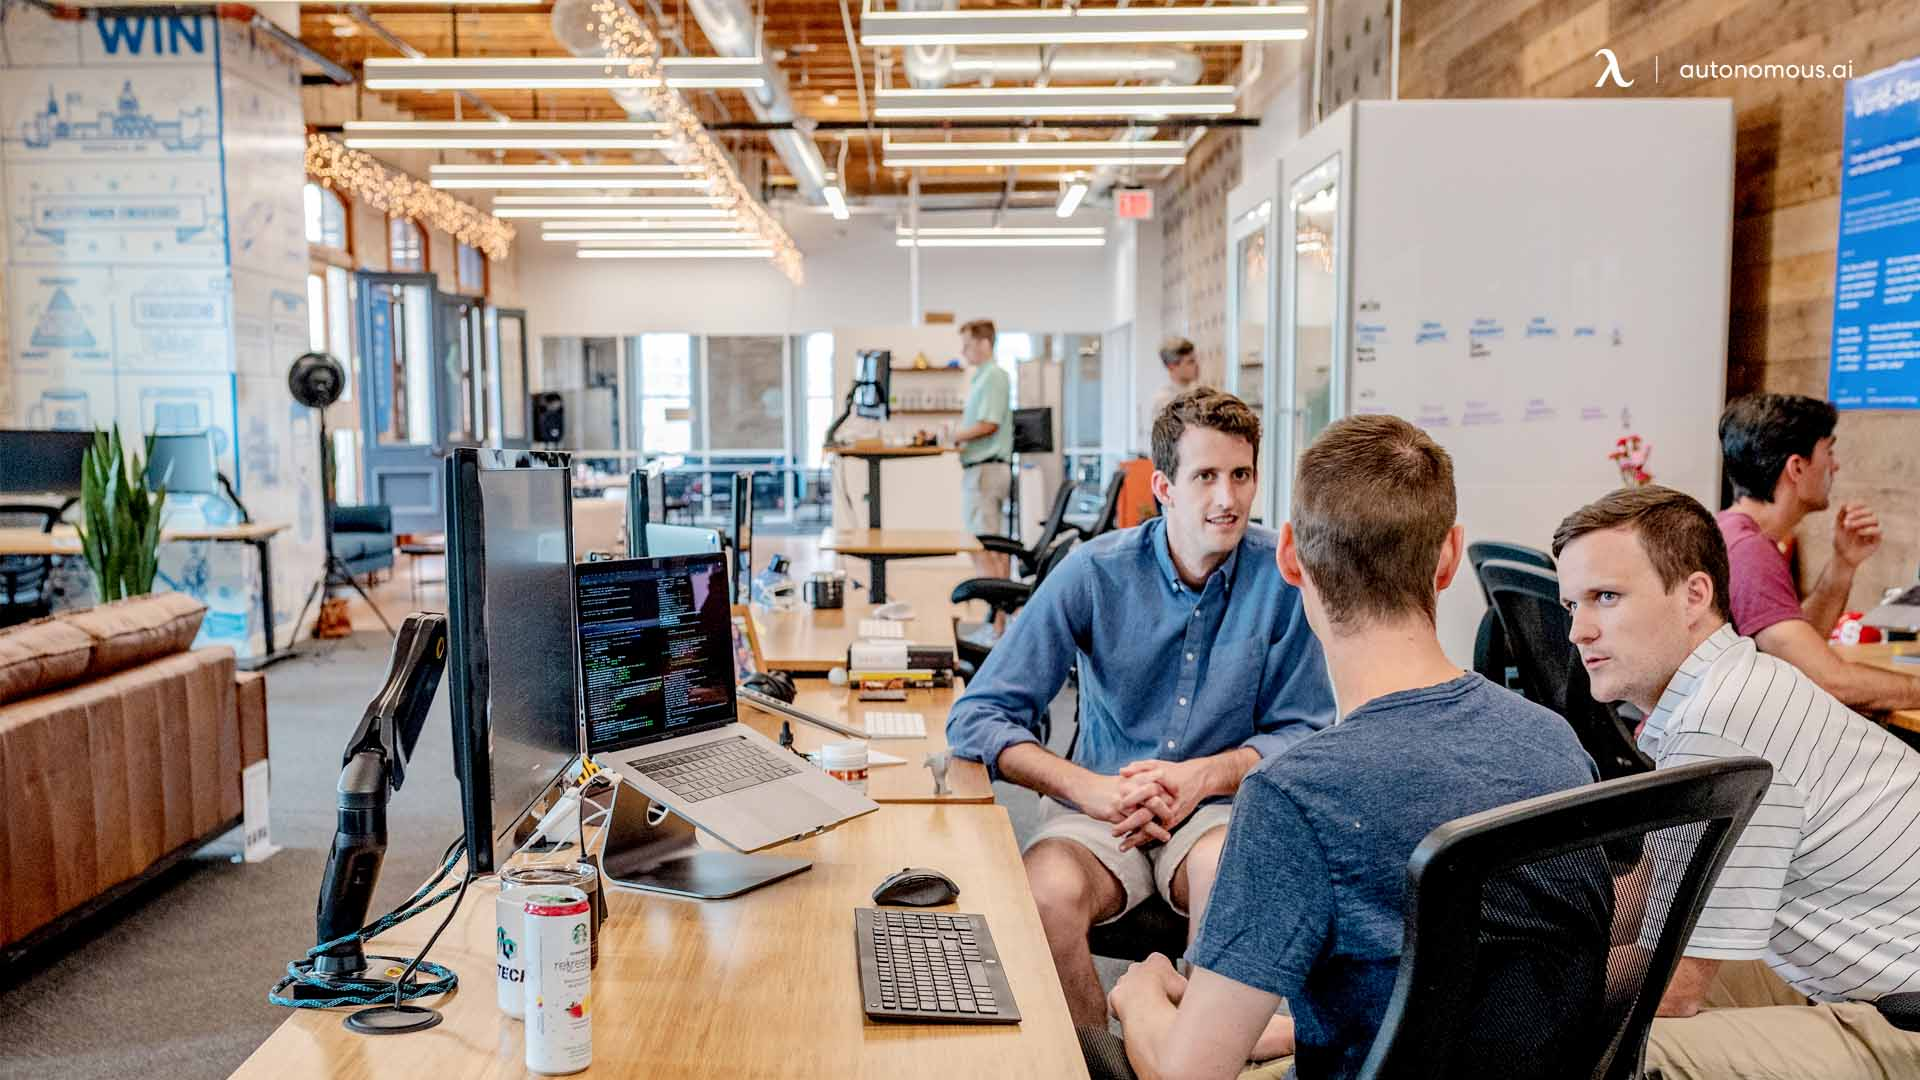 What is a Collaborative Working Space?